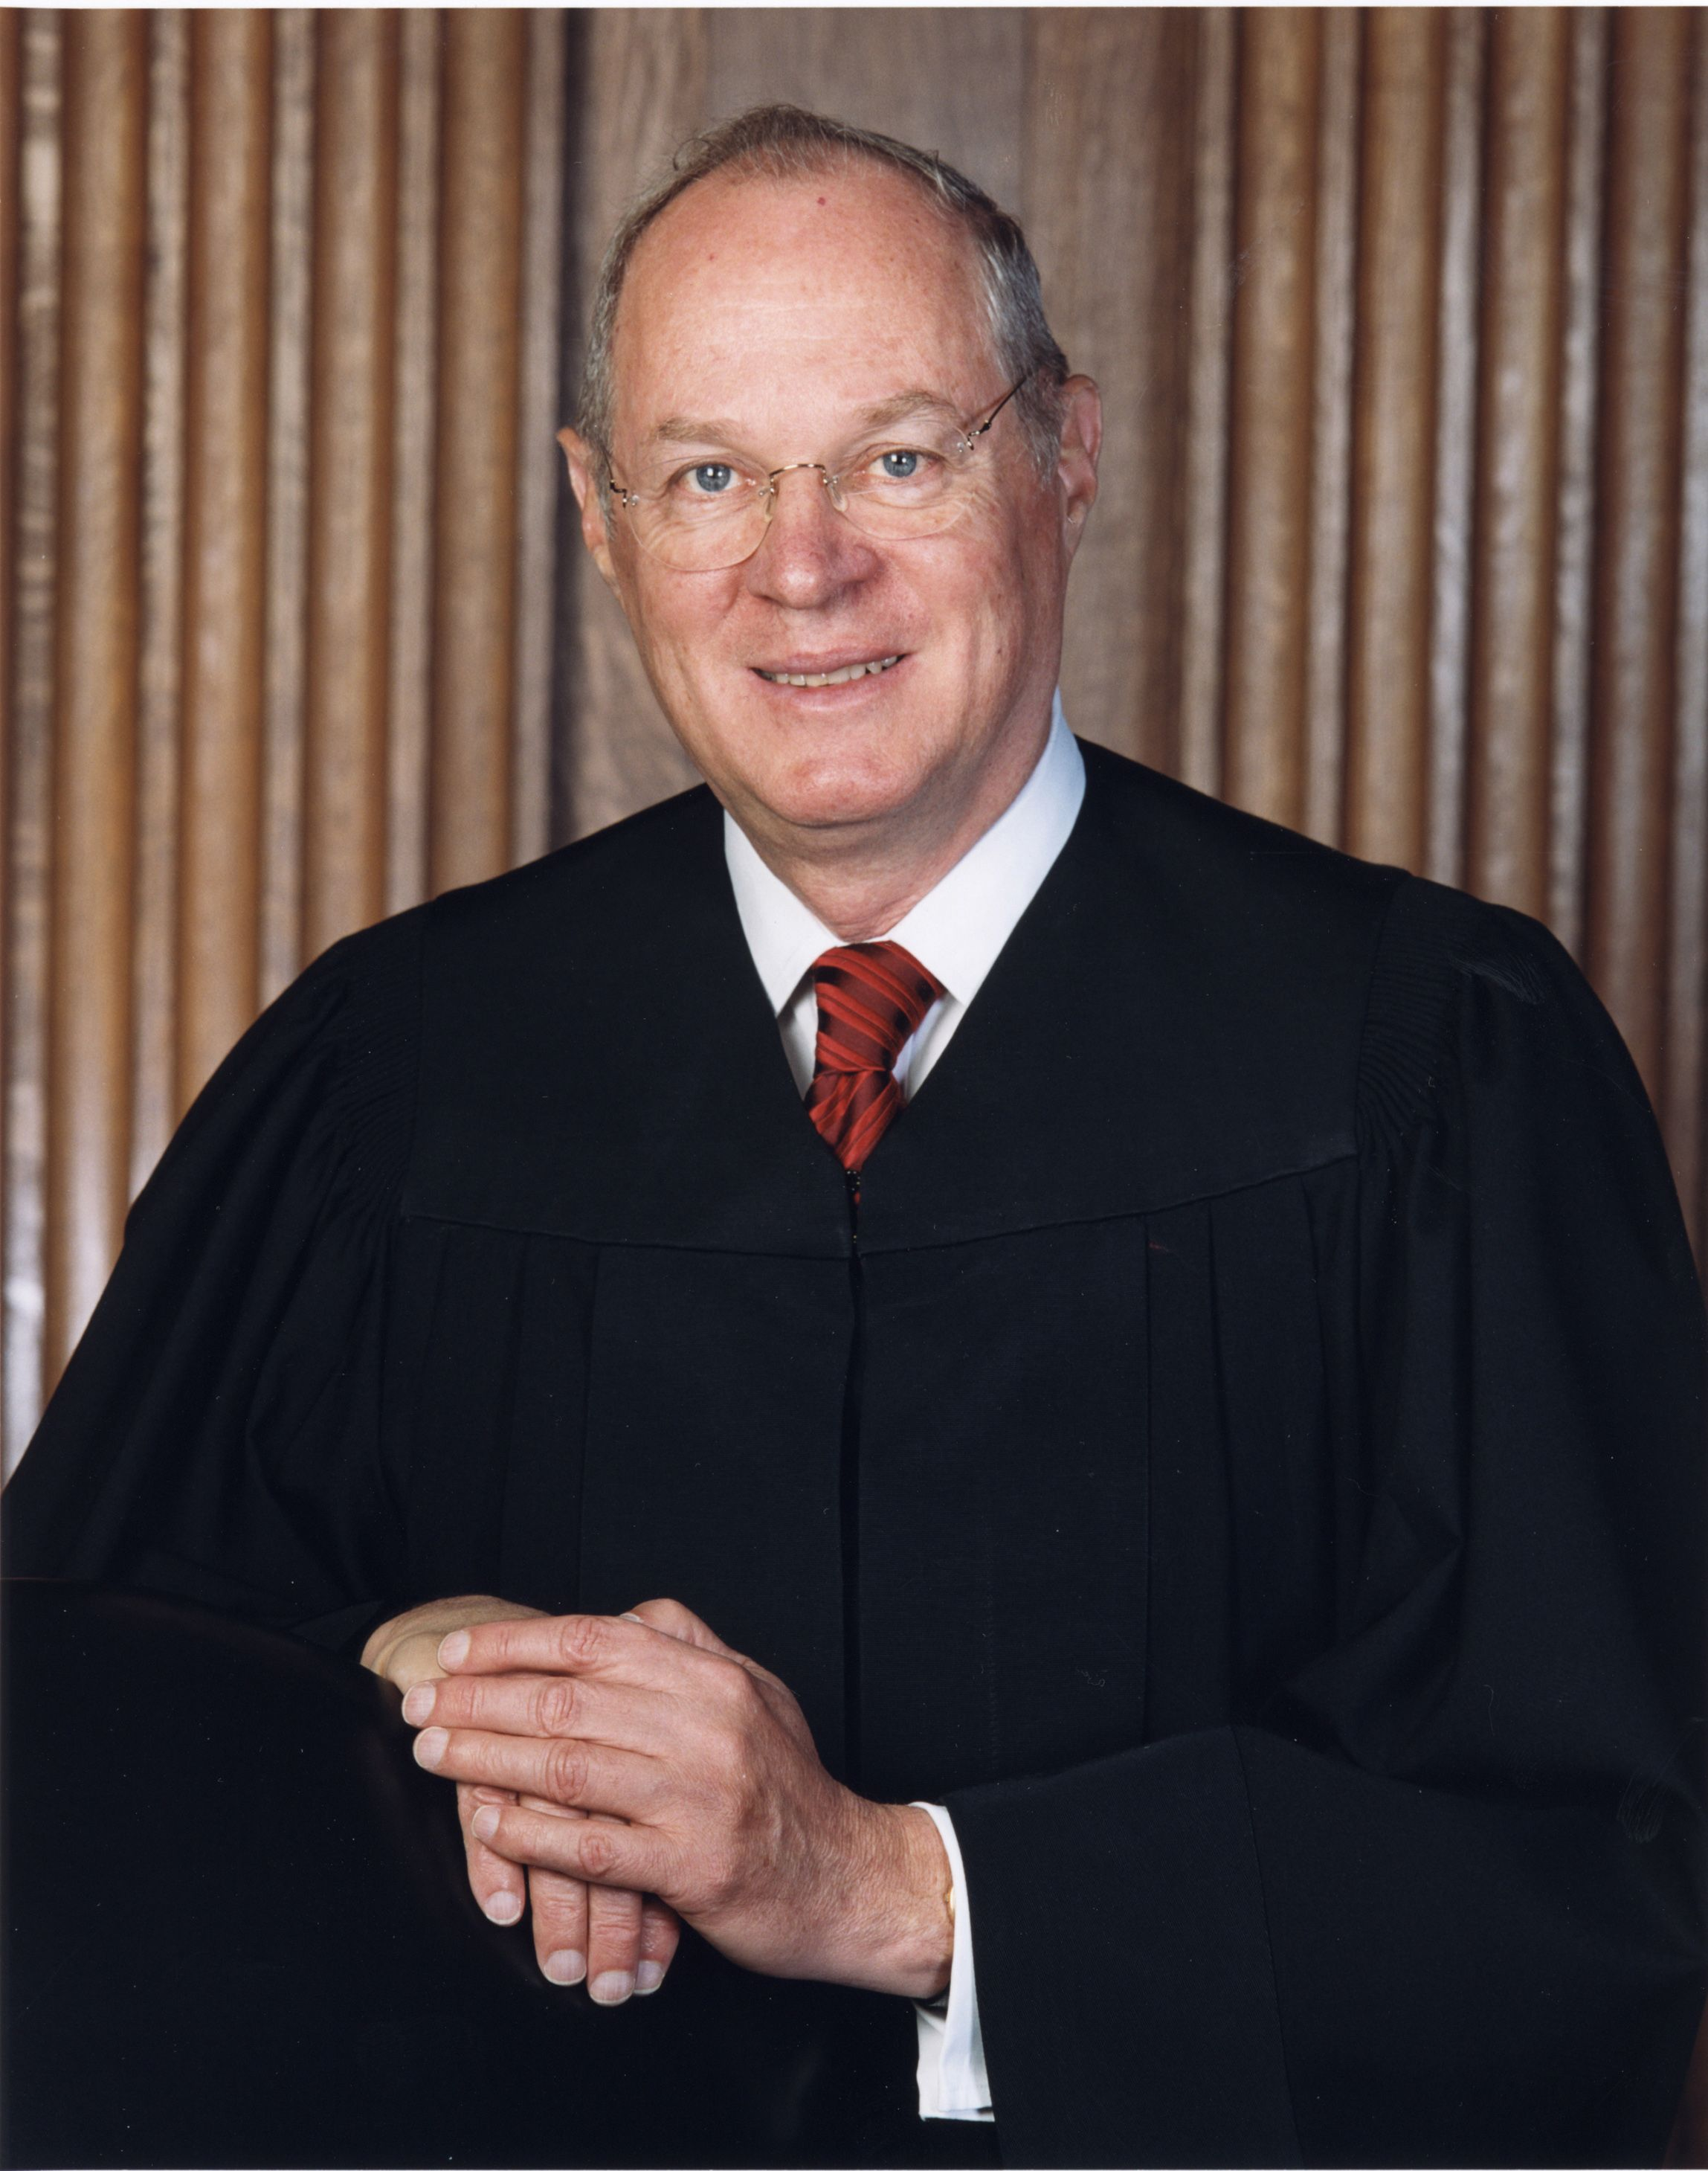 Anthony Kennedy official SCOTUS portrait